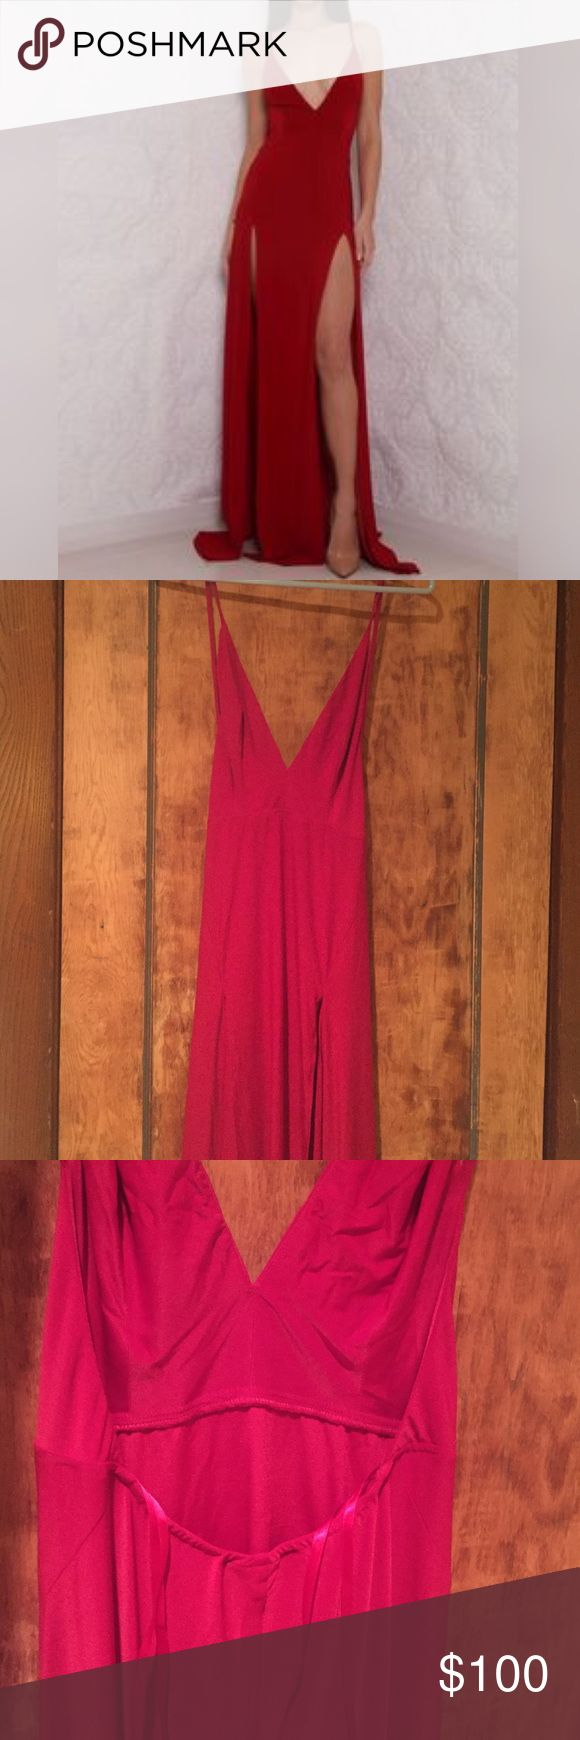 """Authentic Meshki Boutique Red Elle Celine Dress Size XS - Wore once for an event. Very long maxi dress red, leg slits both sides. Sexy! Just no where else to where it too. Super cute :) tag on inside reads """"Abyss"""" - retail wholesalers Meshki purchases from. :) Meshki Boutique Dresses Maxi"""